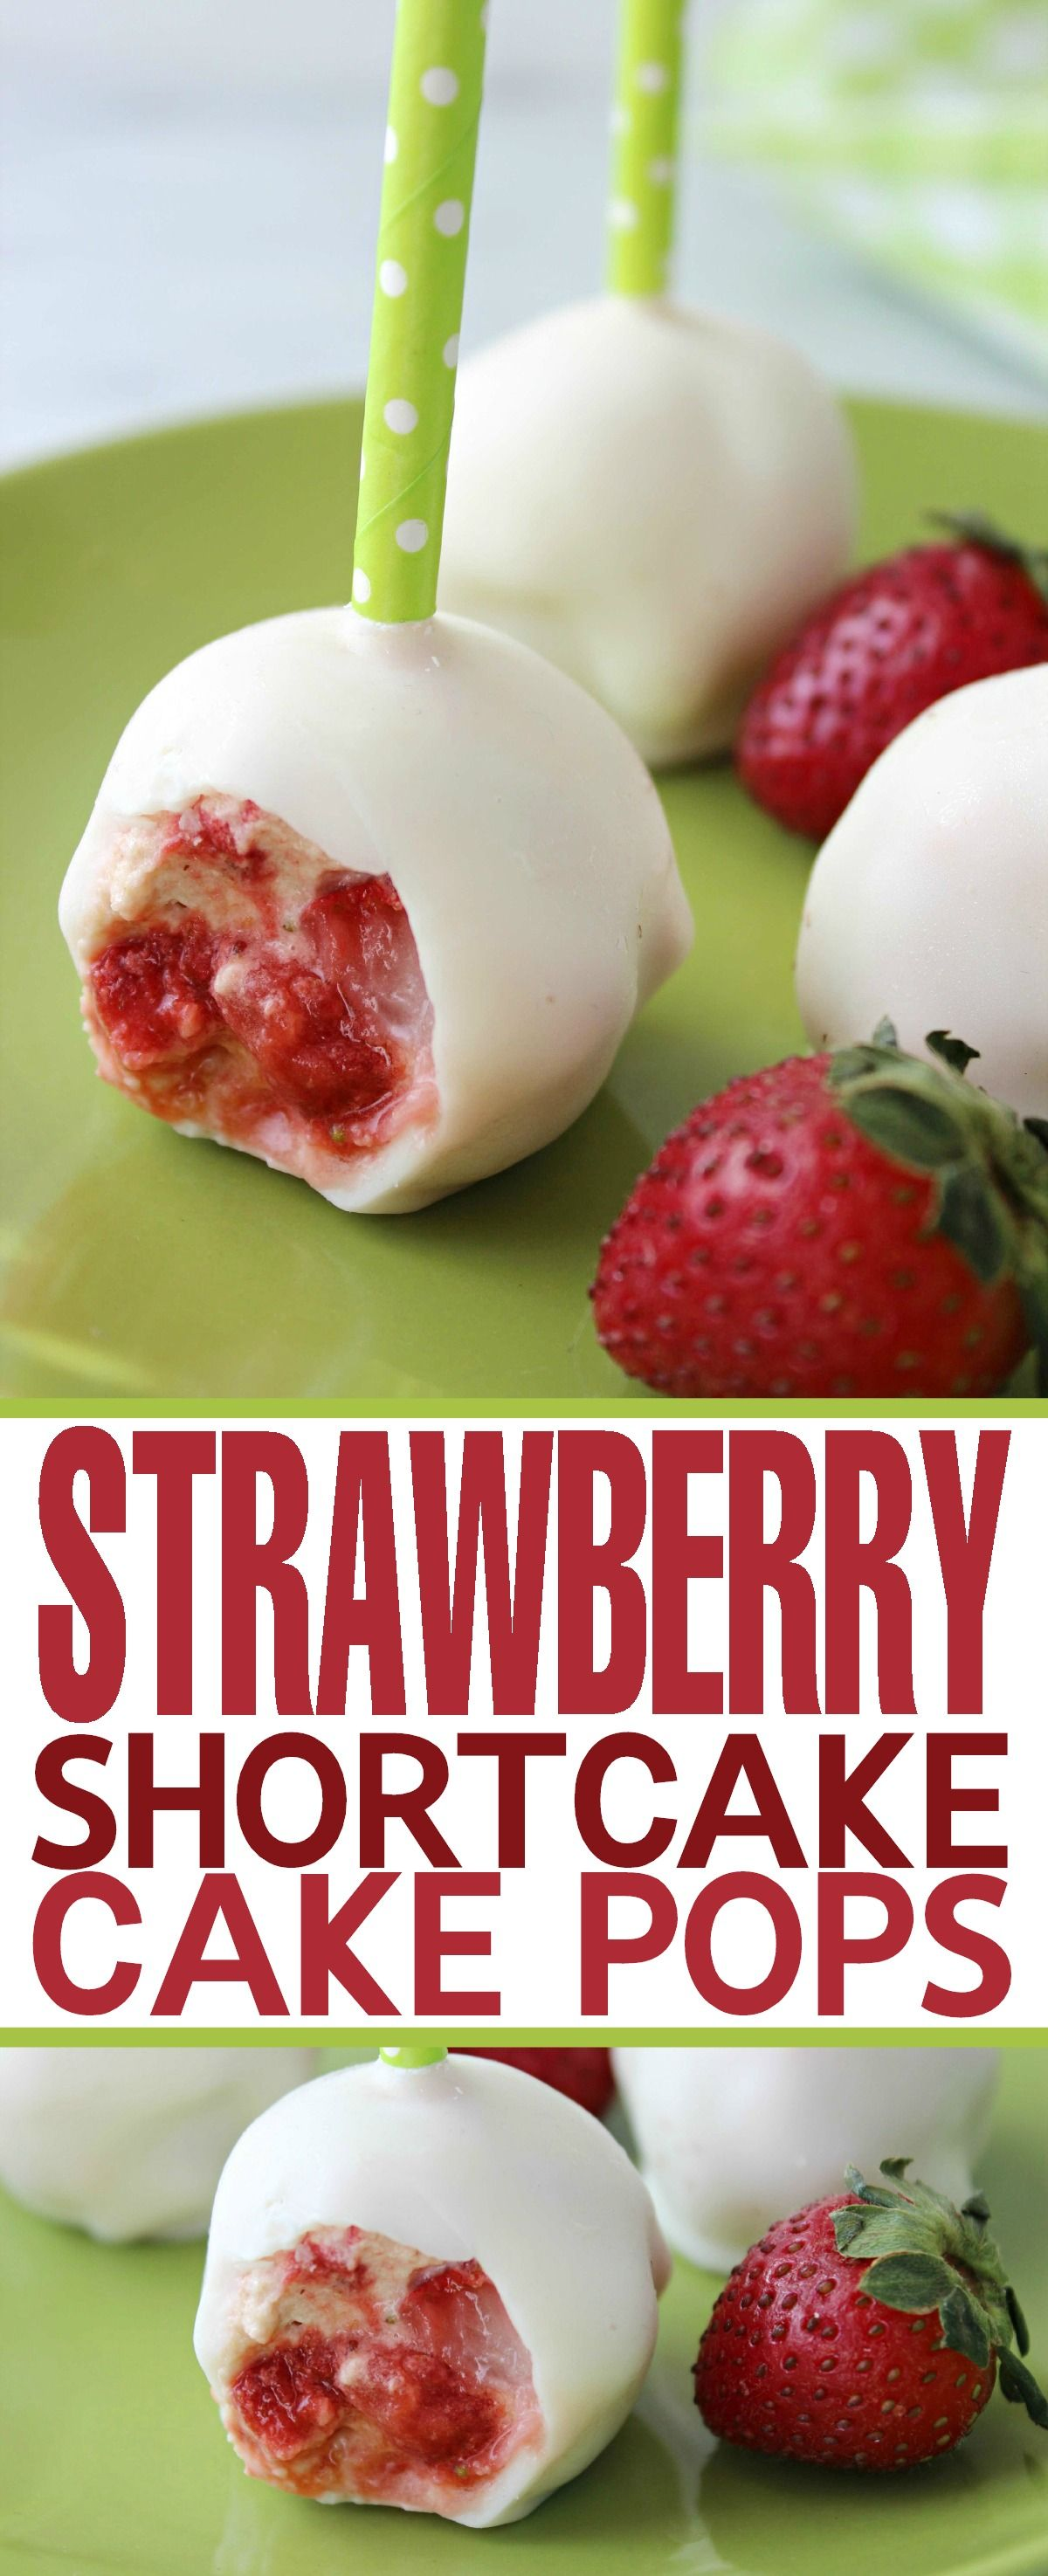 This Strawberry Shortcake Cake Pops Recipe results in the most